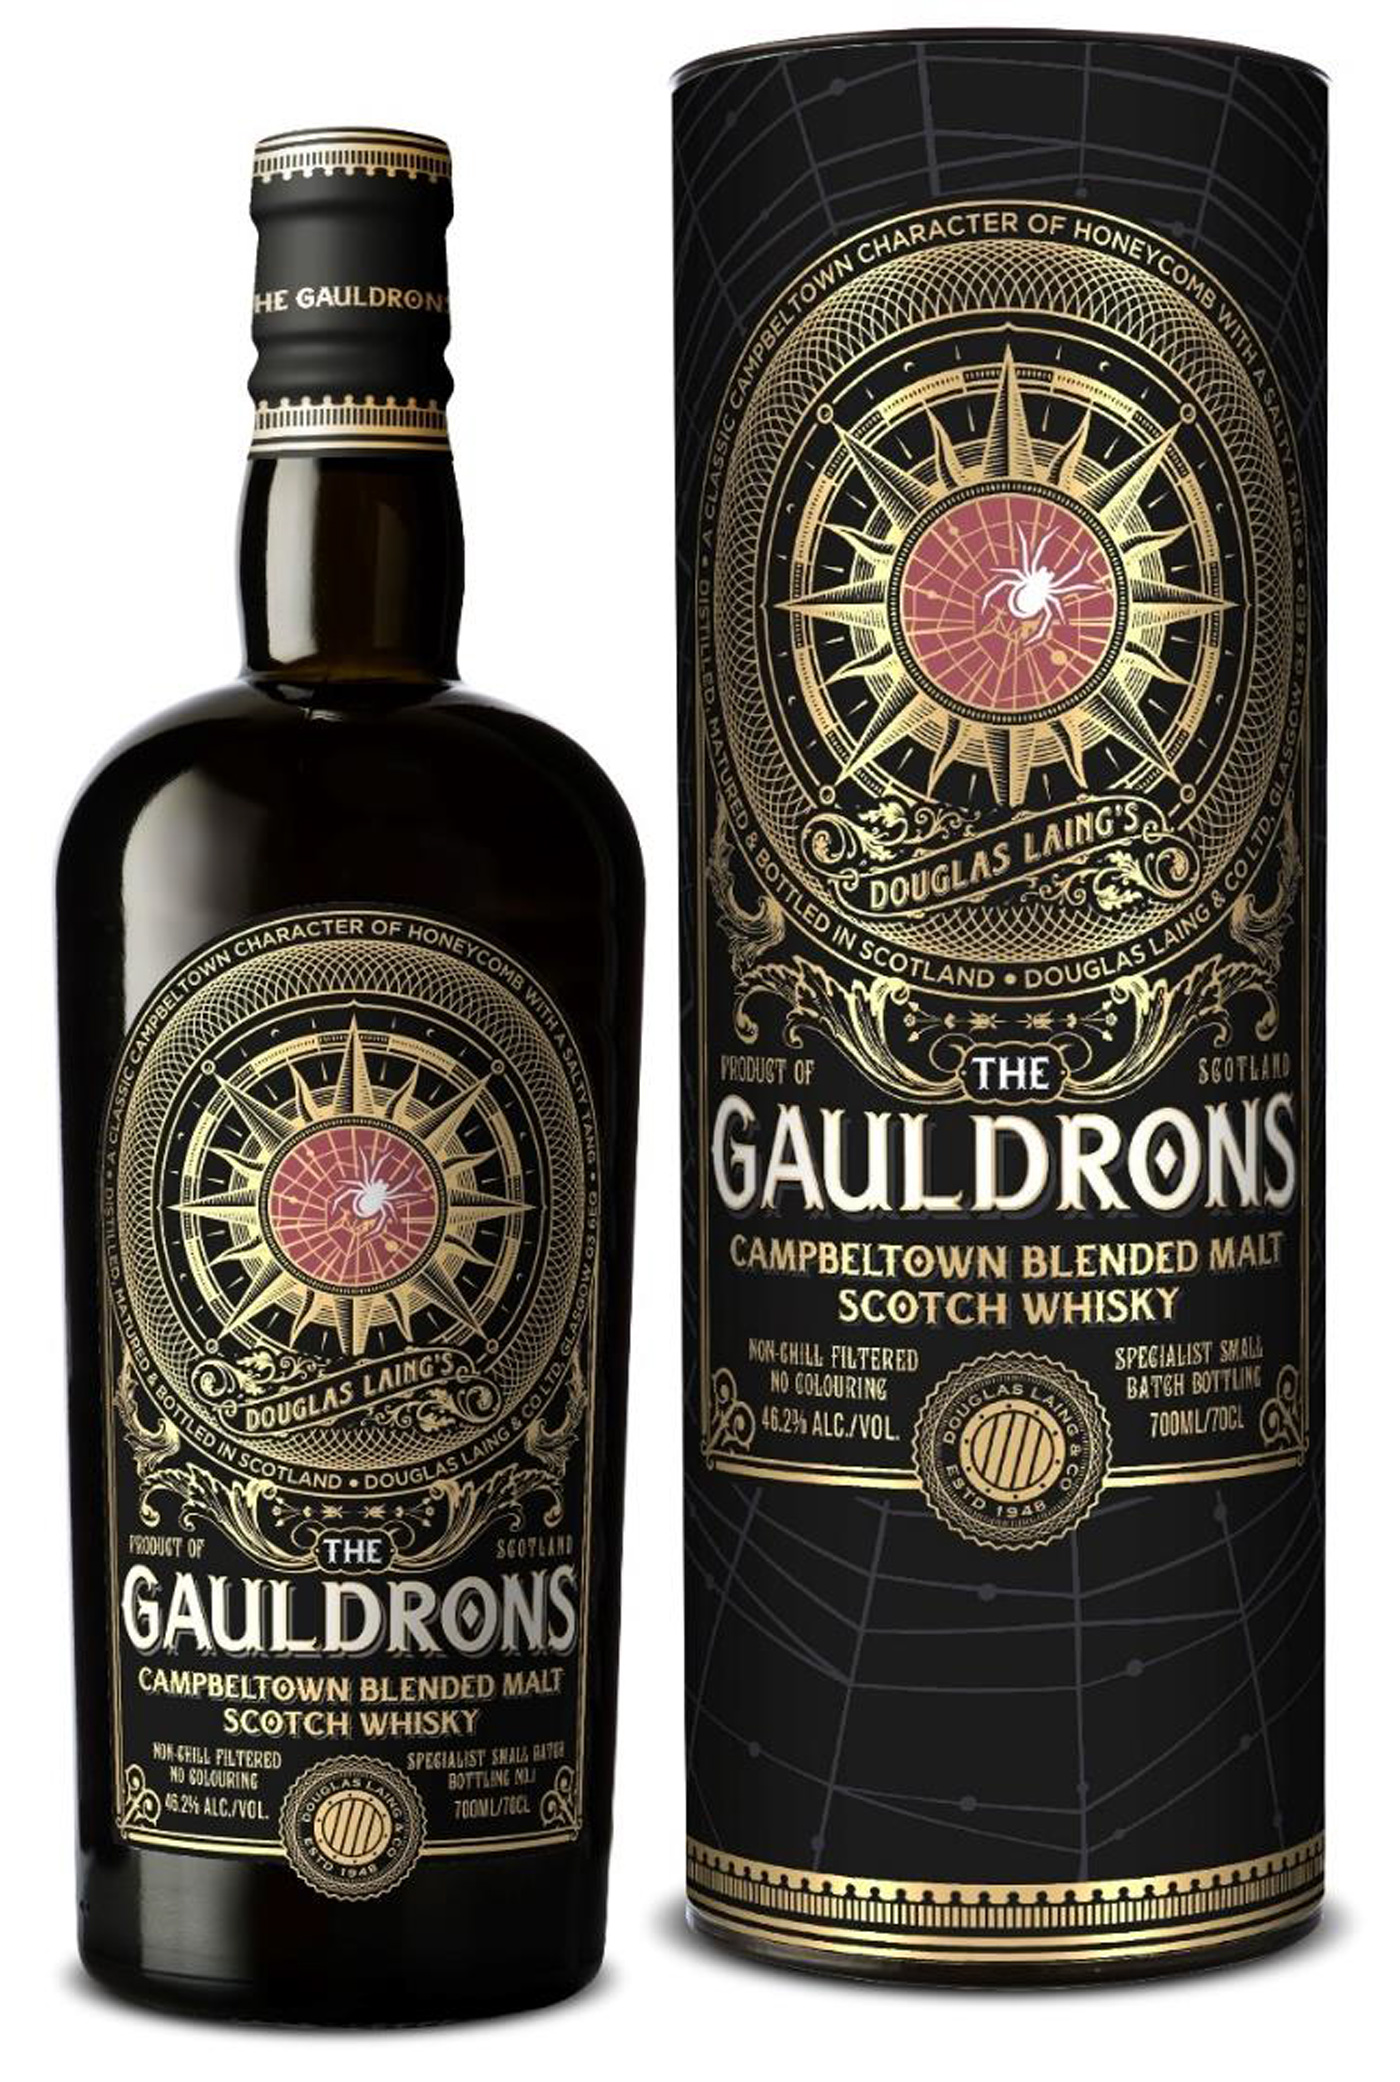 The Gauldrons Campbeltown Limited Edition Batch 3